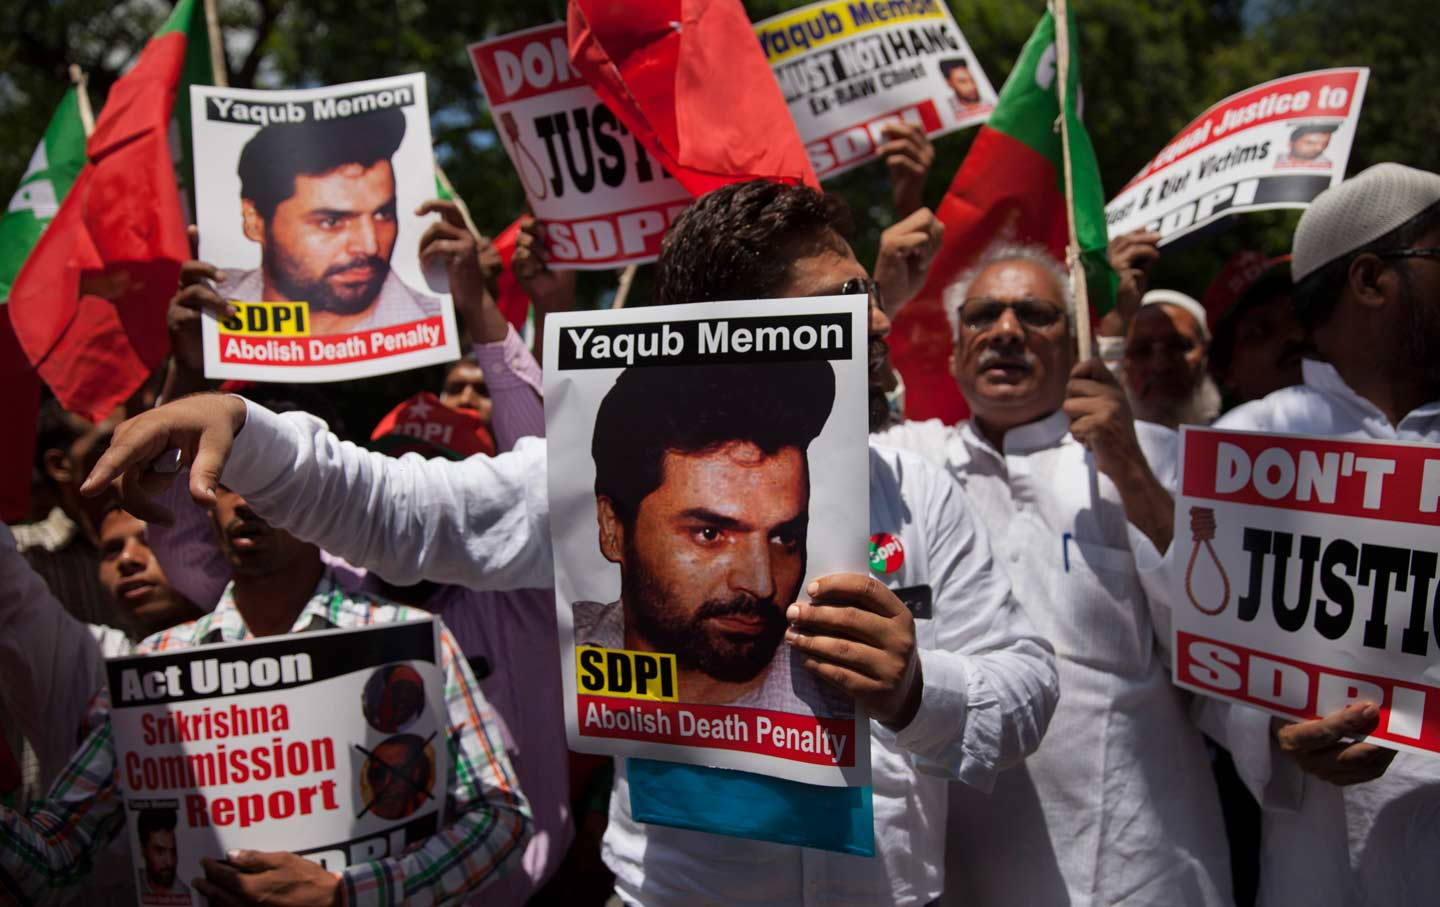 Social Democratic Party of India activists carrying placards with photographs of Yakub Memon, July 27, 2015.